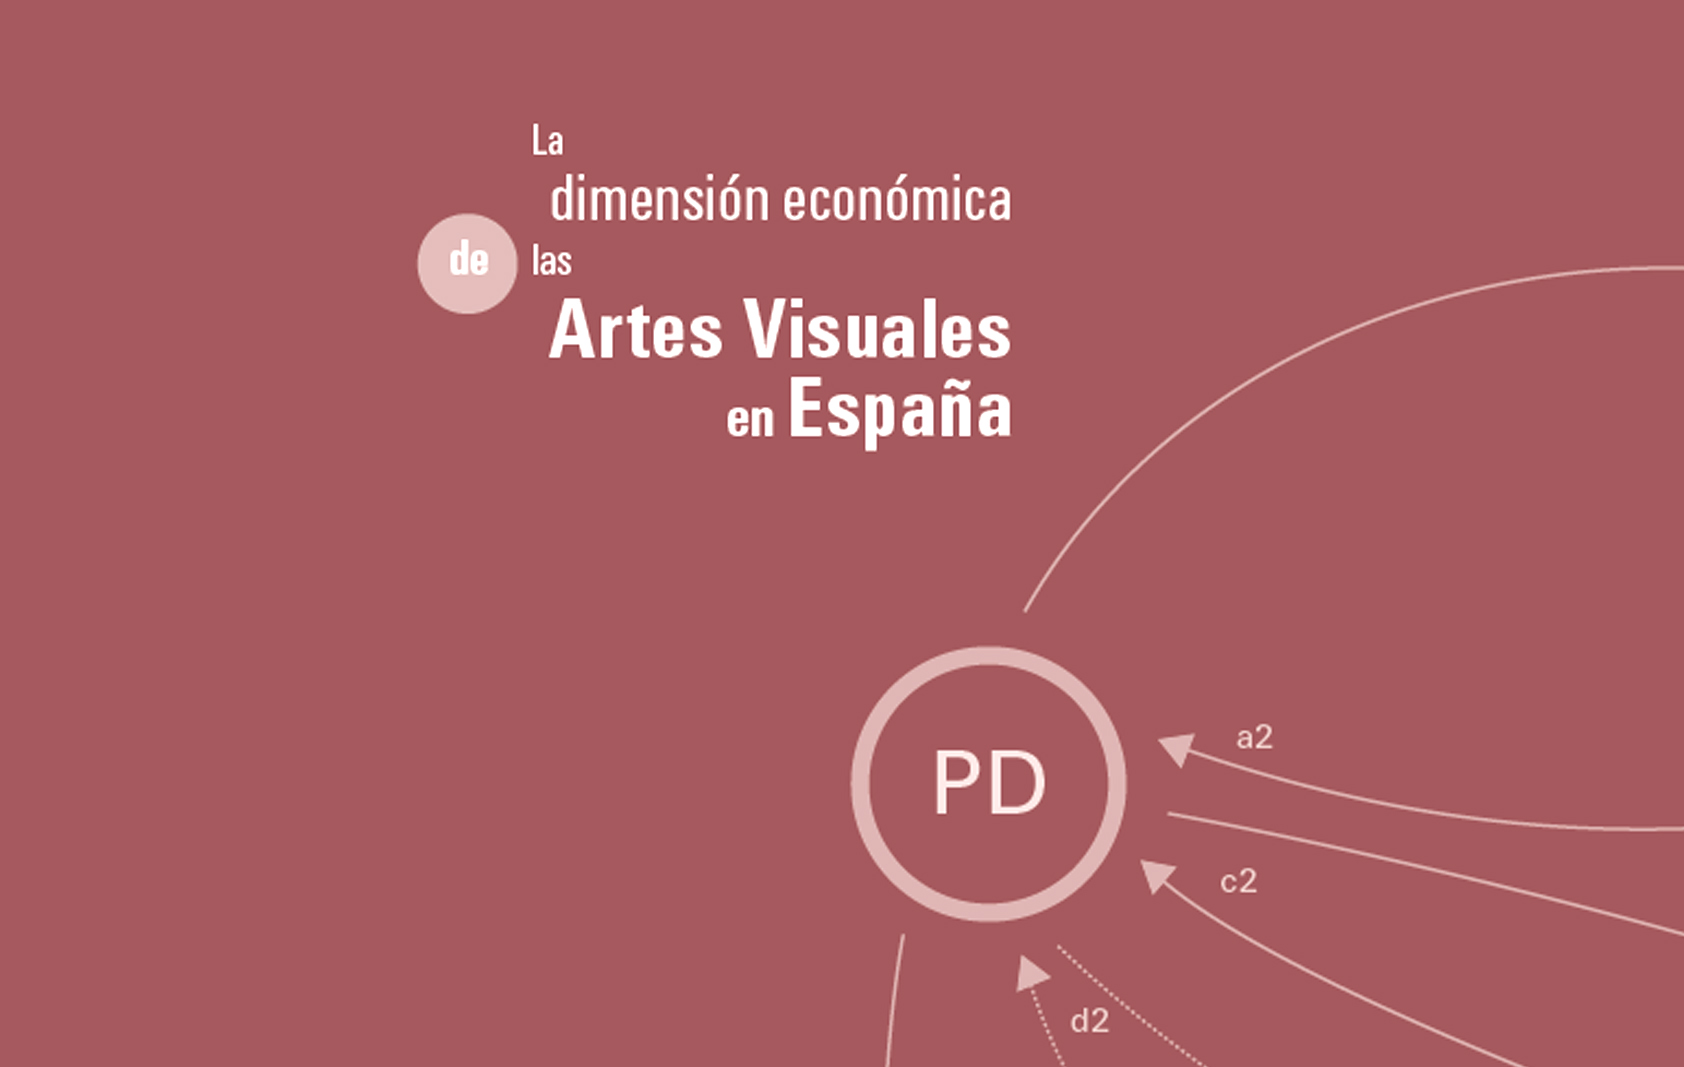 dimension eco artes